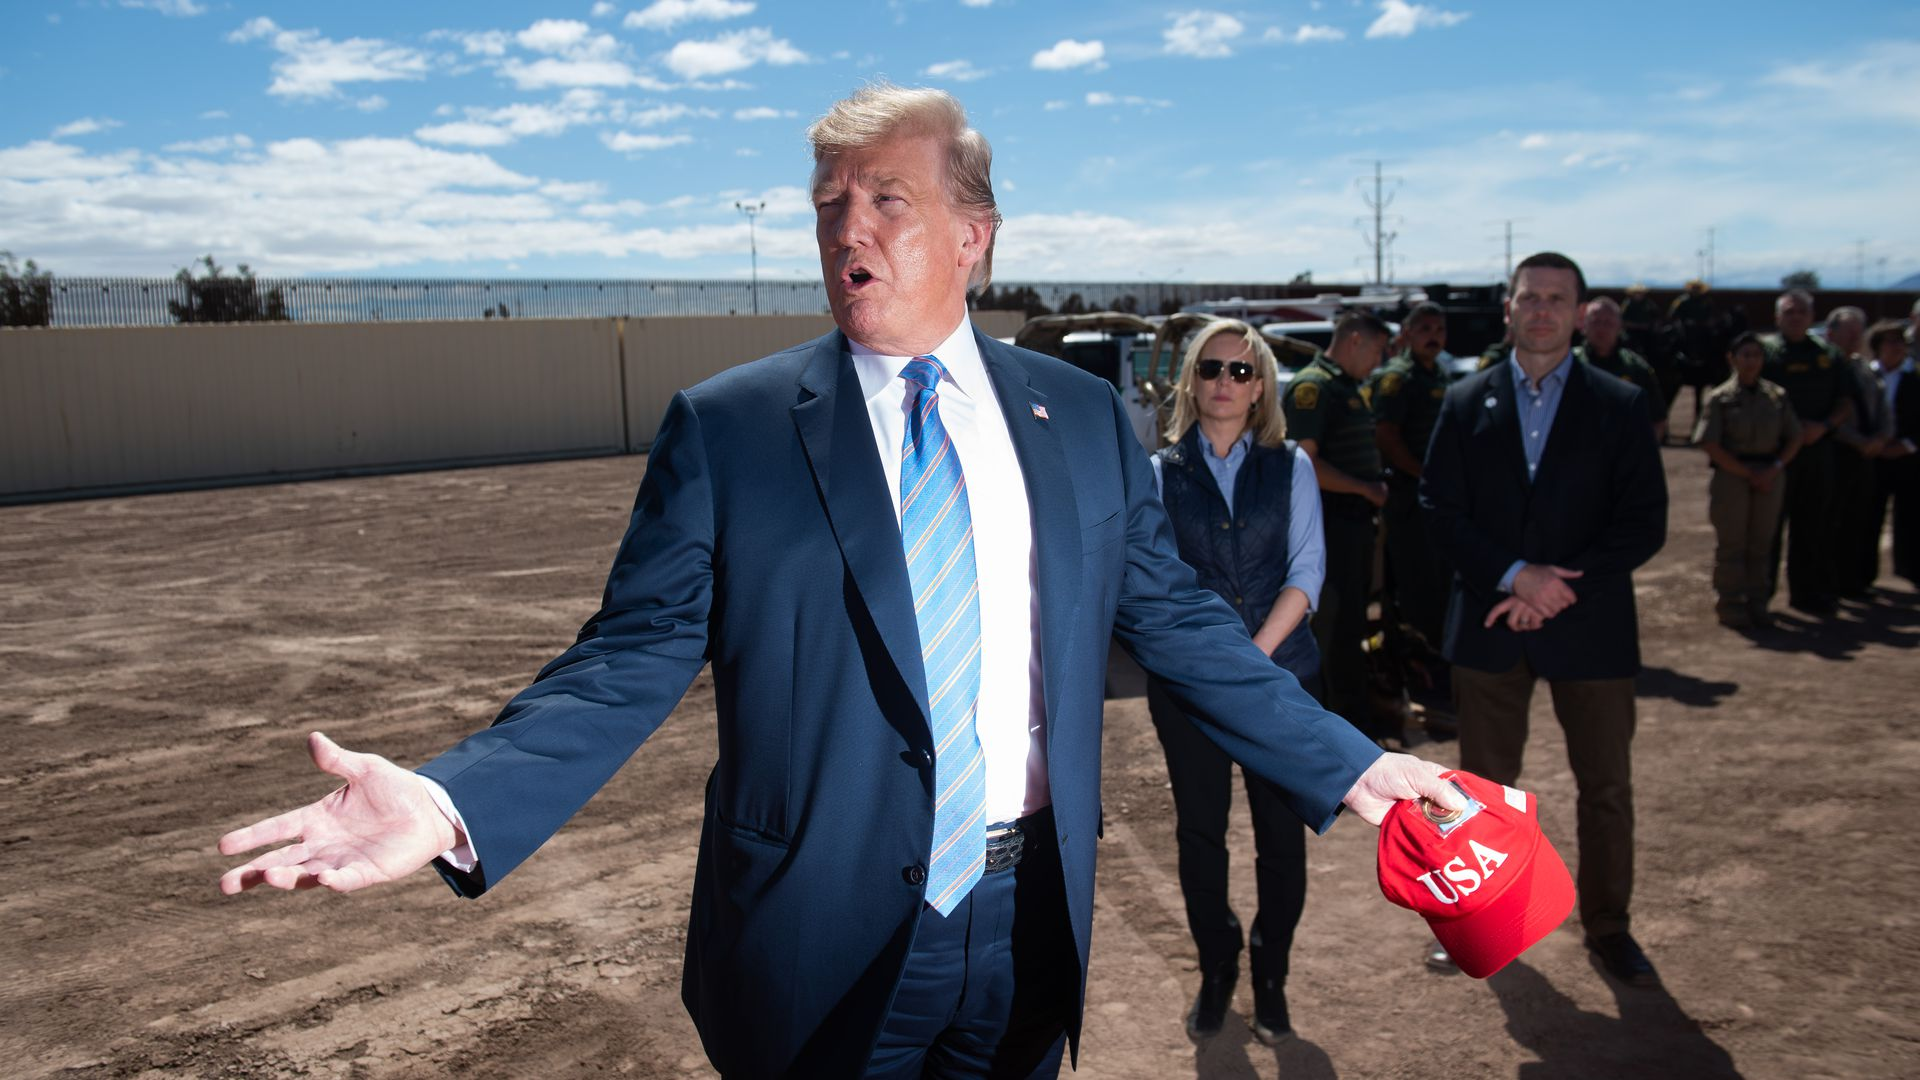 President Donald Trump tours the border wall between the United States and Mexico in Calexico, California, April 5.